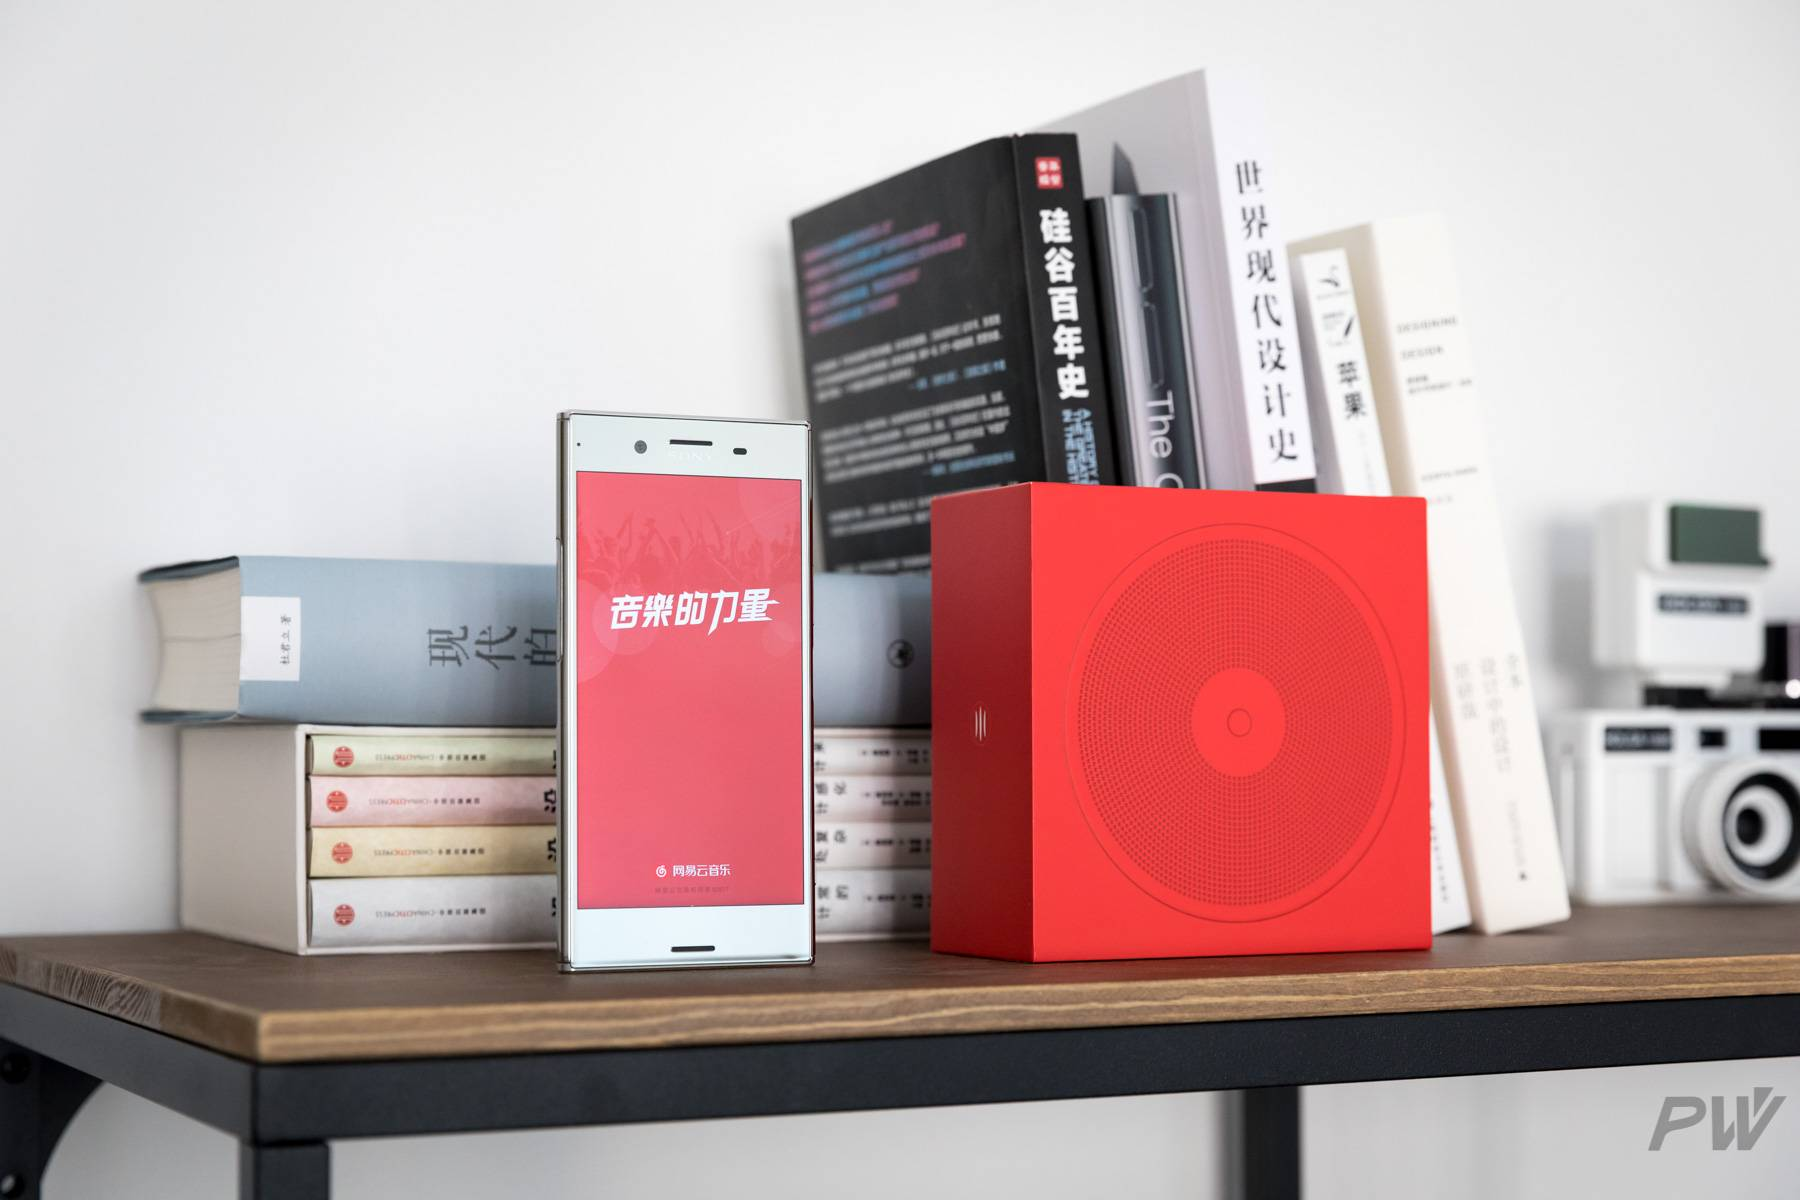 netease music bluetooth speaker Photo by Hao Ying-17